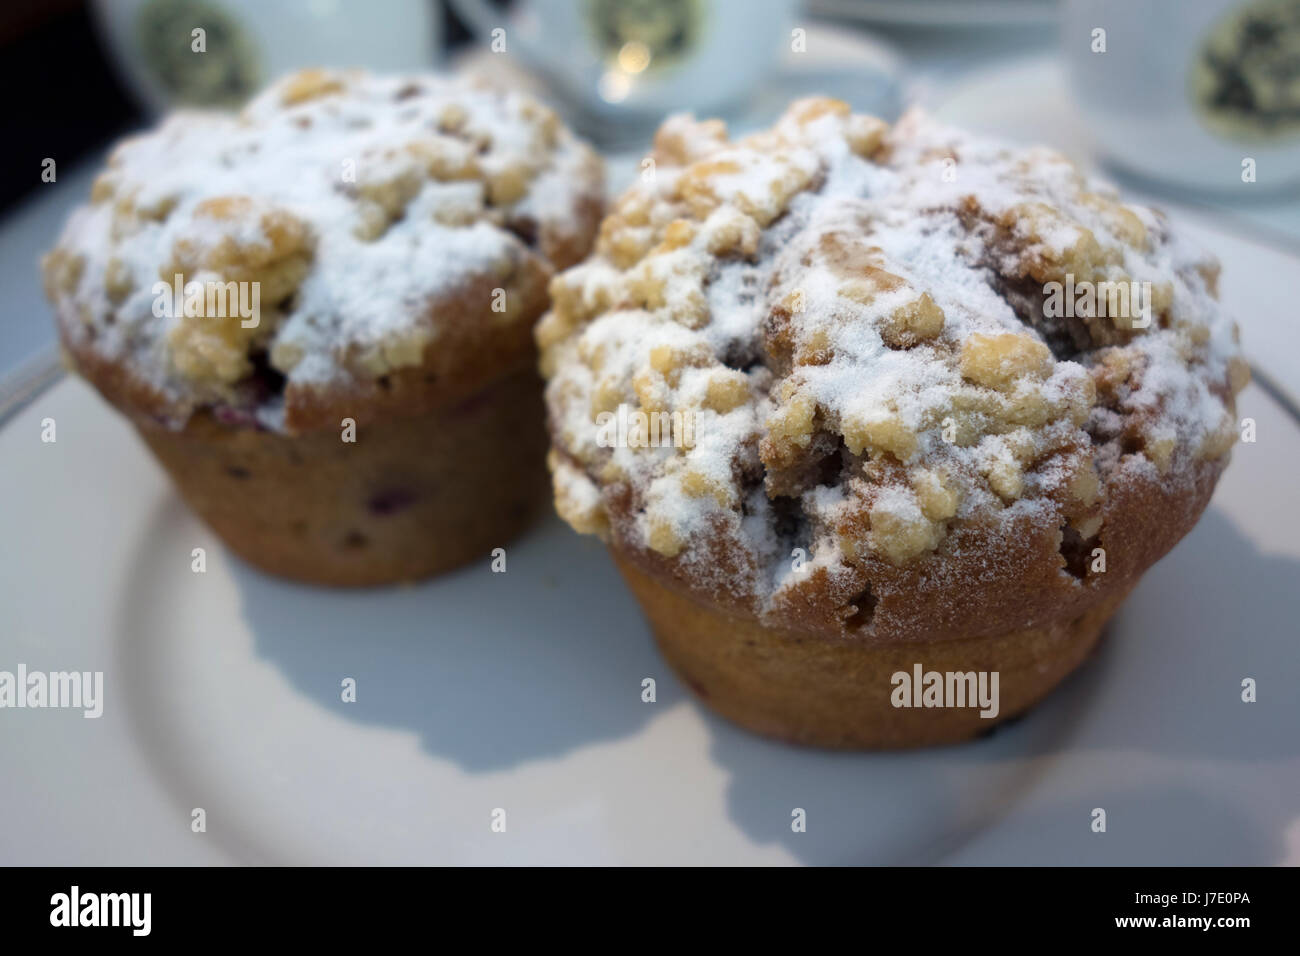 Muffins at Mariage Frères tea room, Paris, France - Stock Image